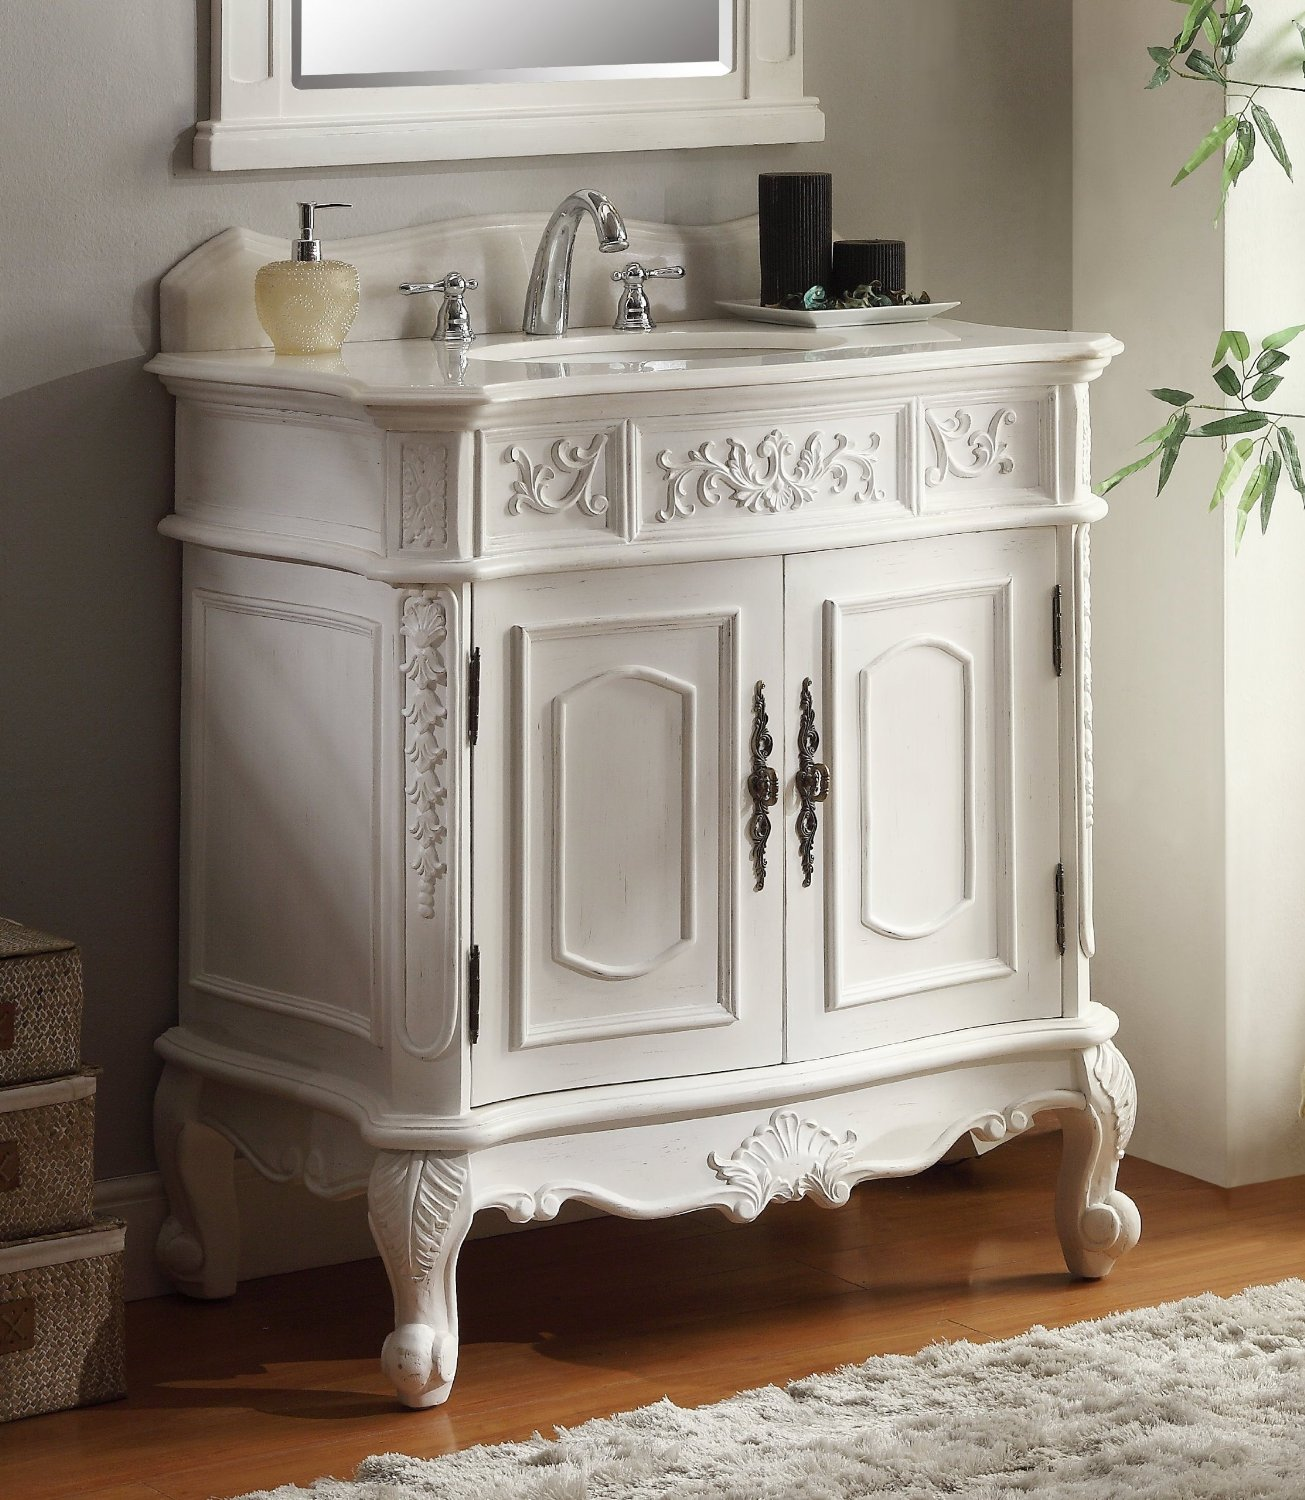 33 inch white vanity. adelina 33 inch antique white single